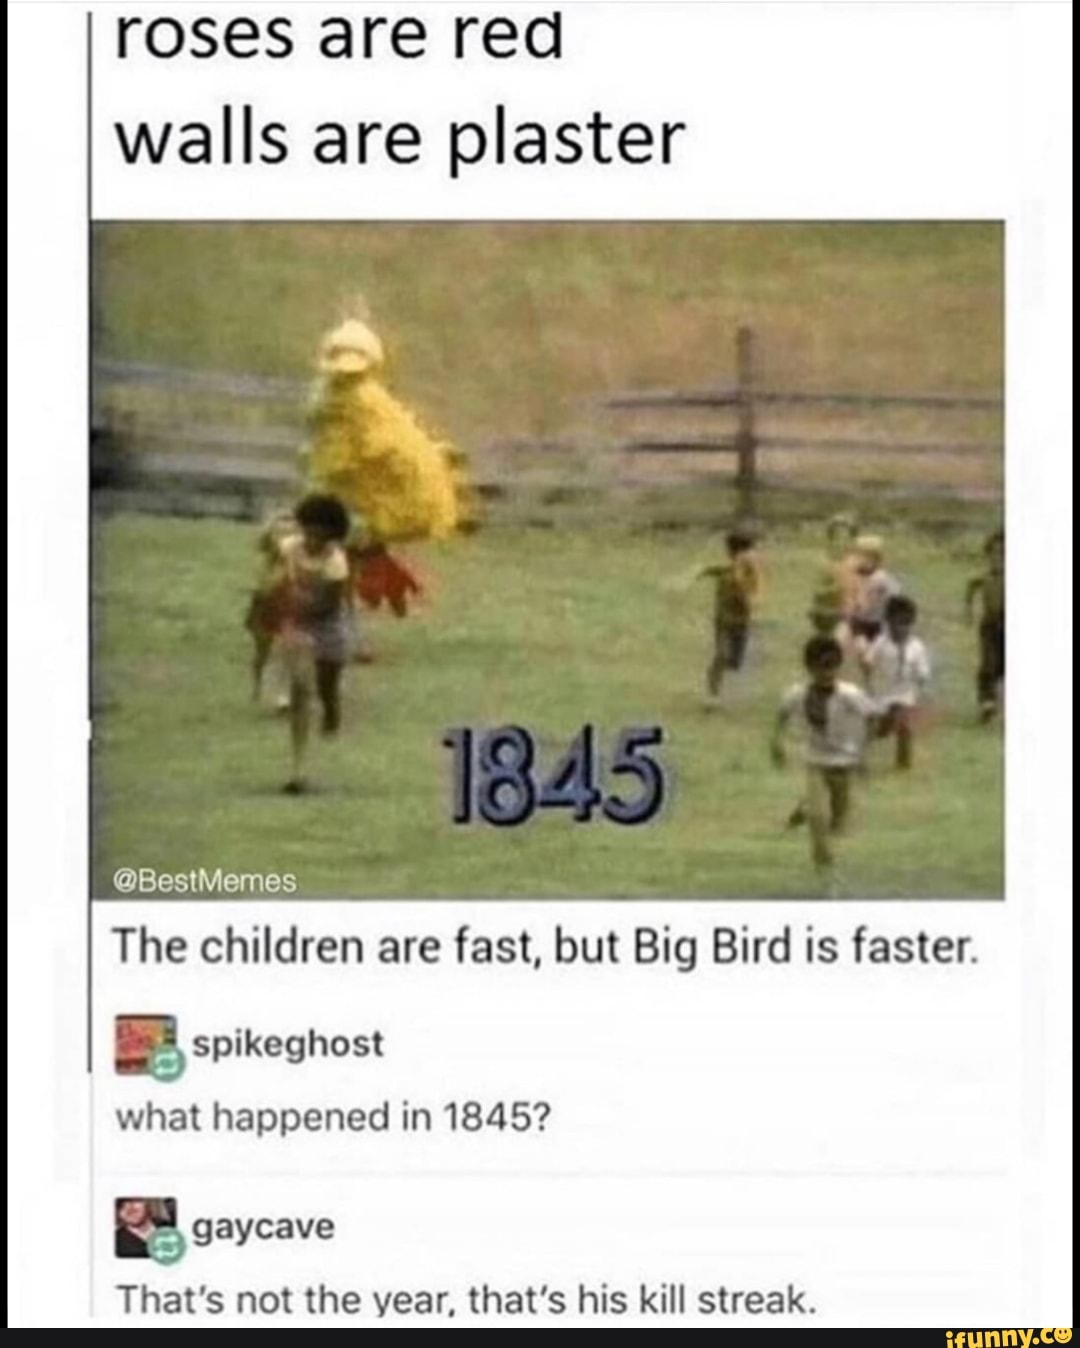 roses are red walls are plaster big bird